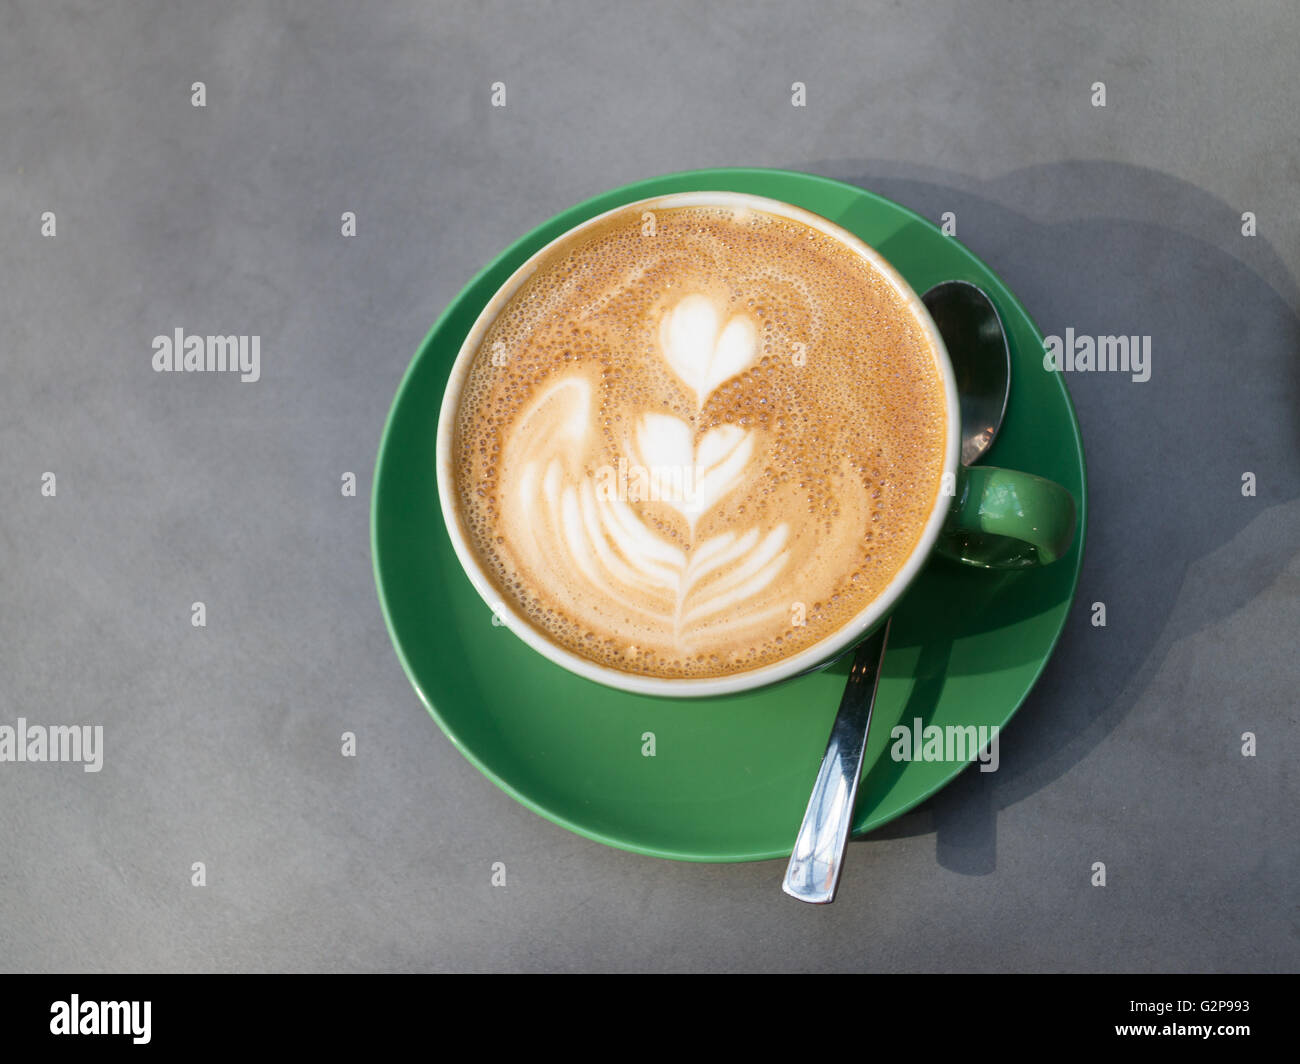 Cup, saucer and spoon, latte coffee with heart pattern on surface Stock Photo